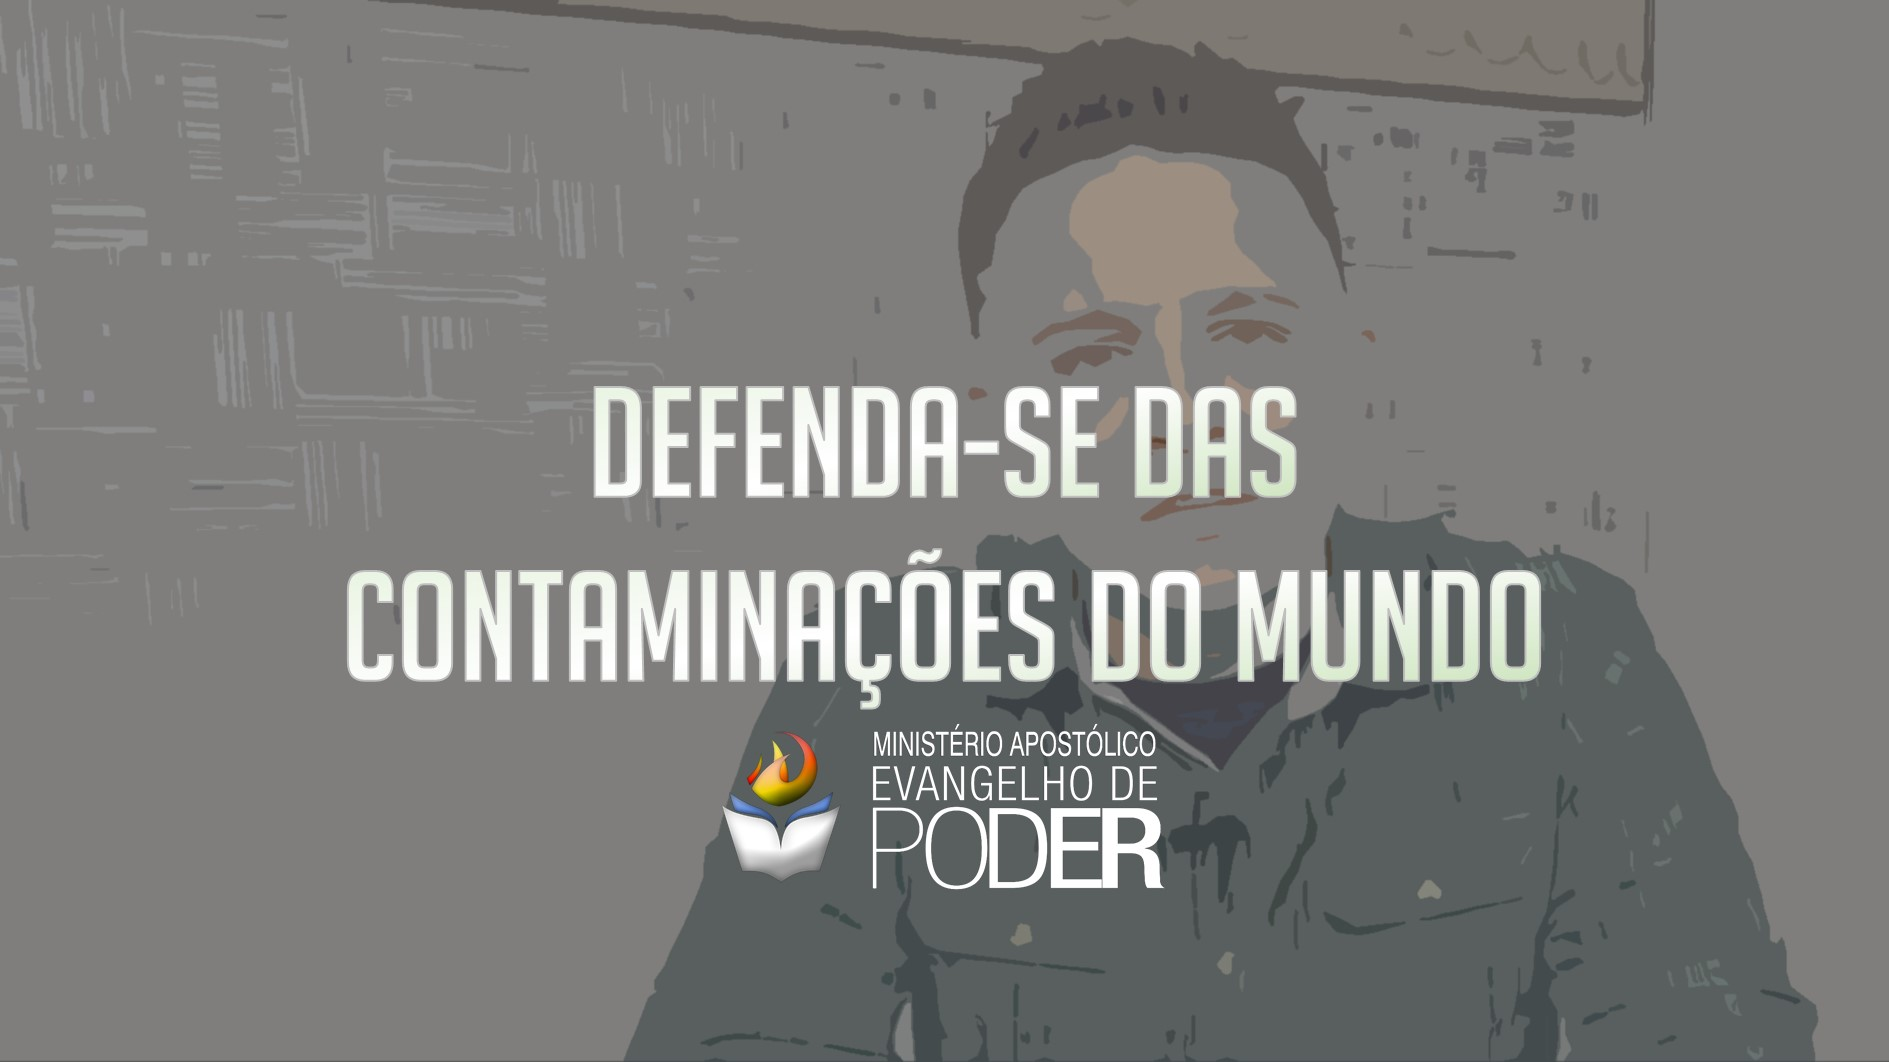 DEFENDA-SE DAS CONTAMINAÇÕES DO MUNDO